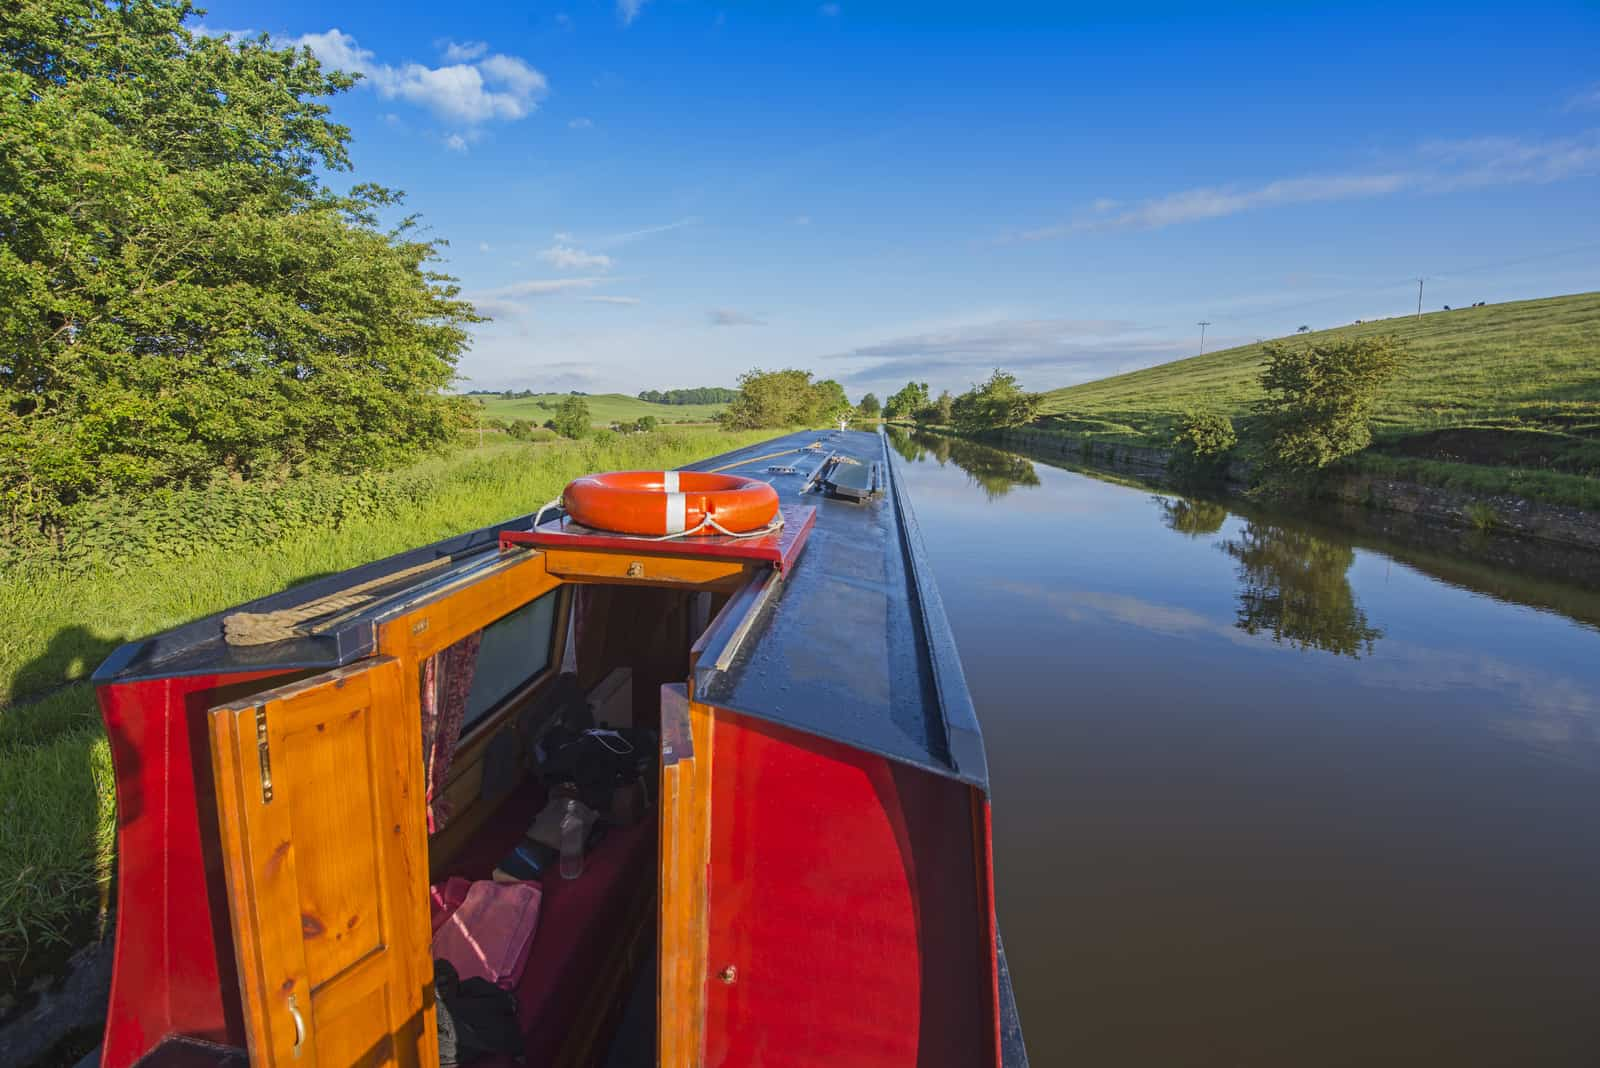 today we look at some common narrowboat problems.